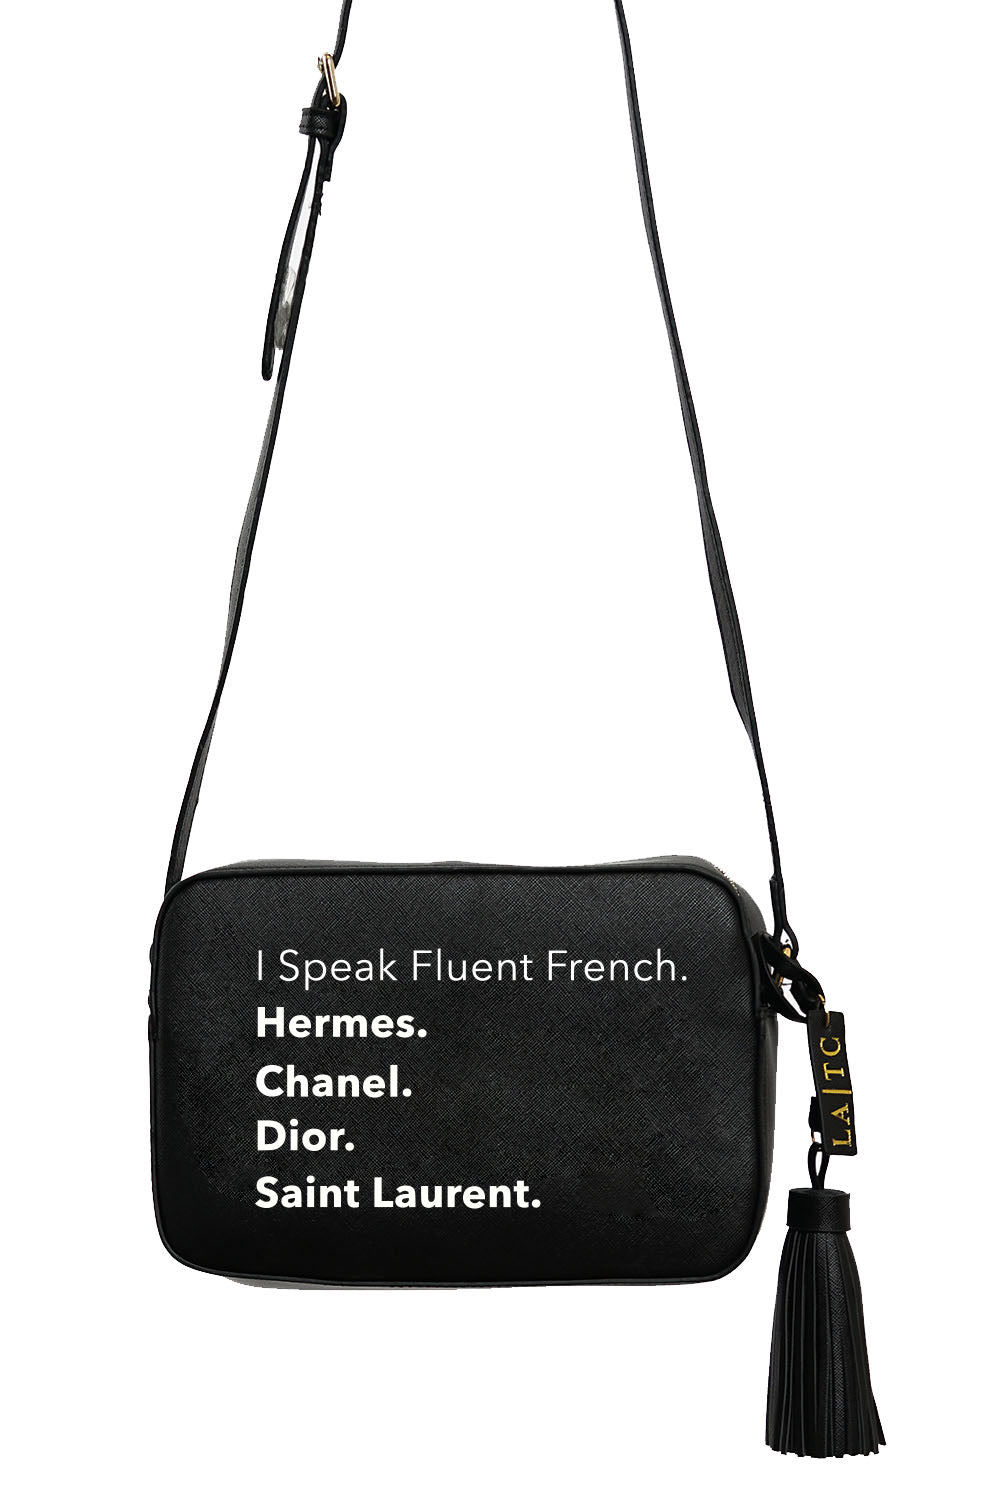 VEGAN CROSSBODY BAG - Fluent French (Black)